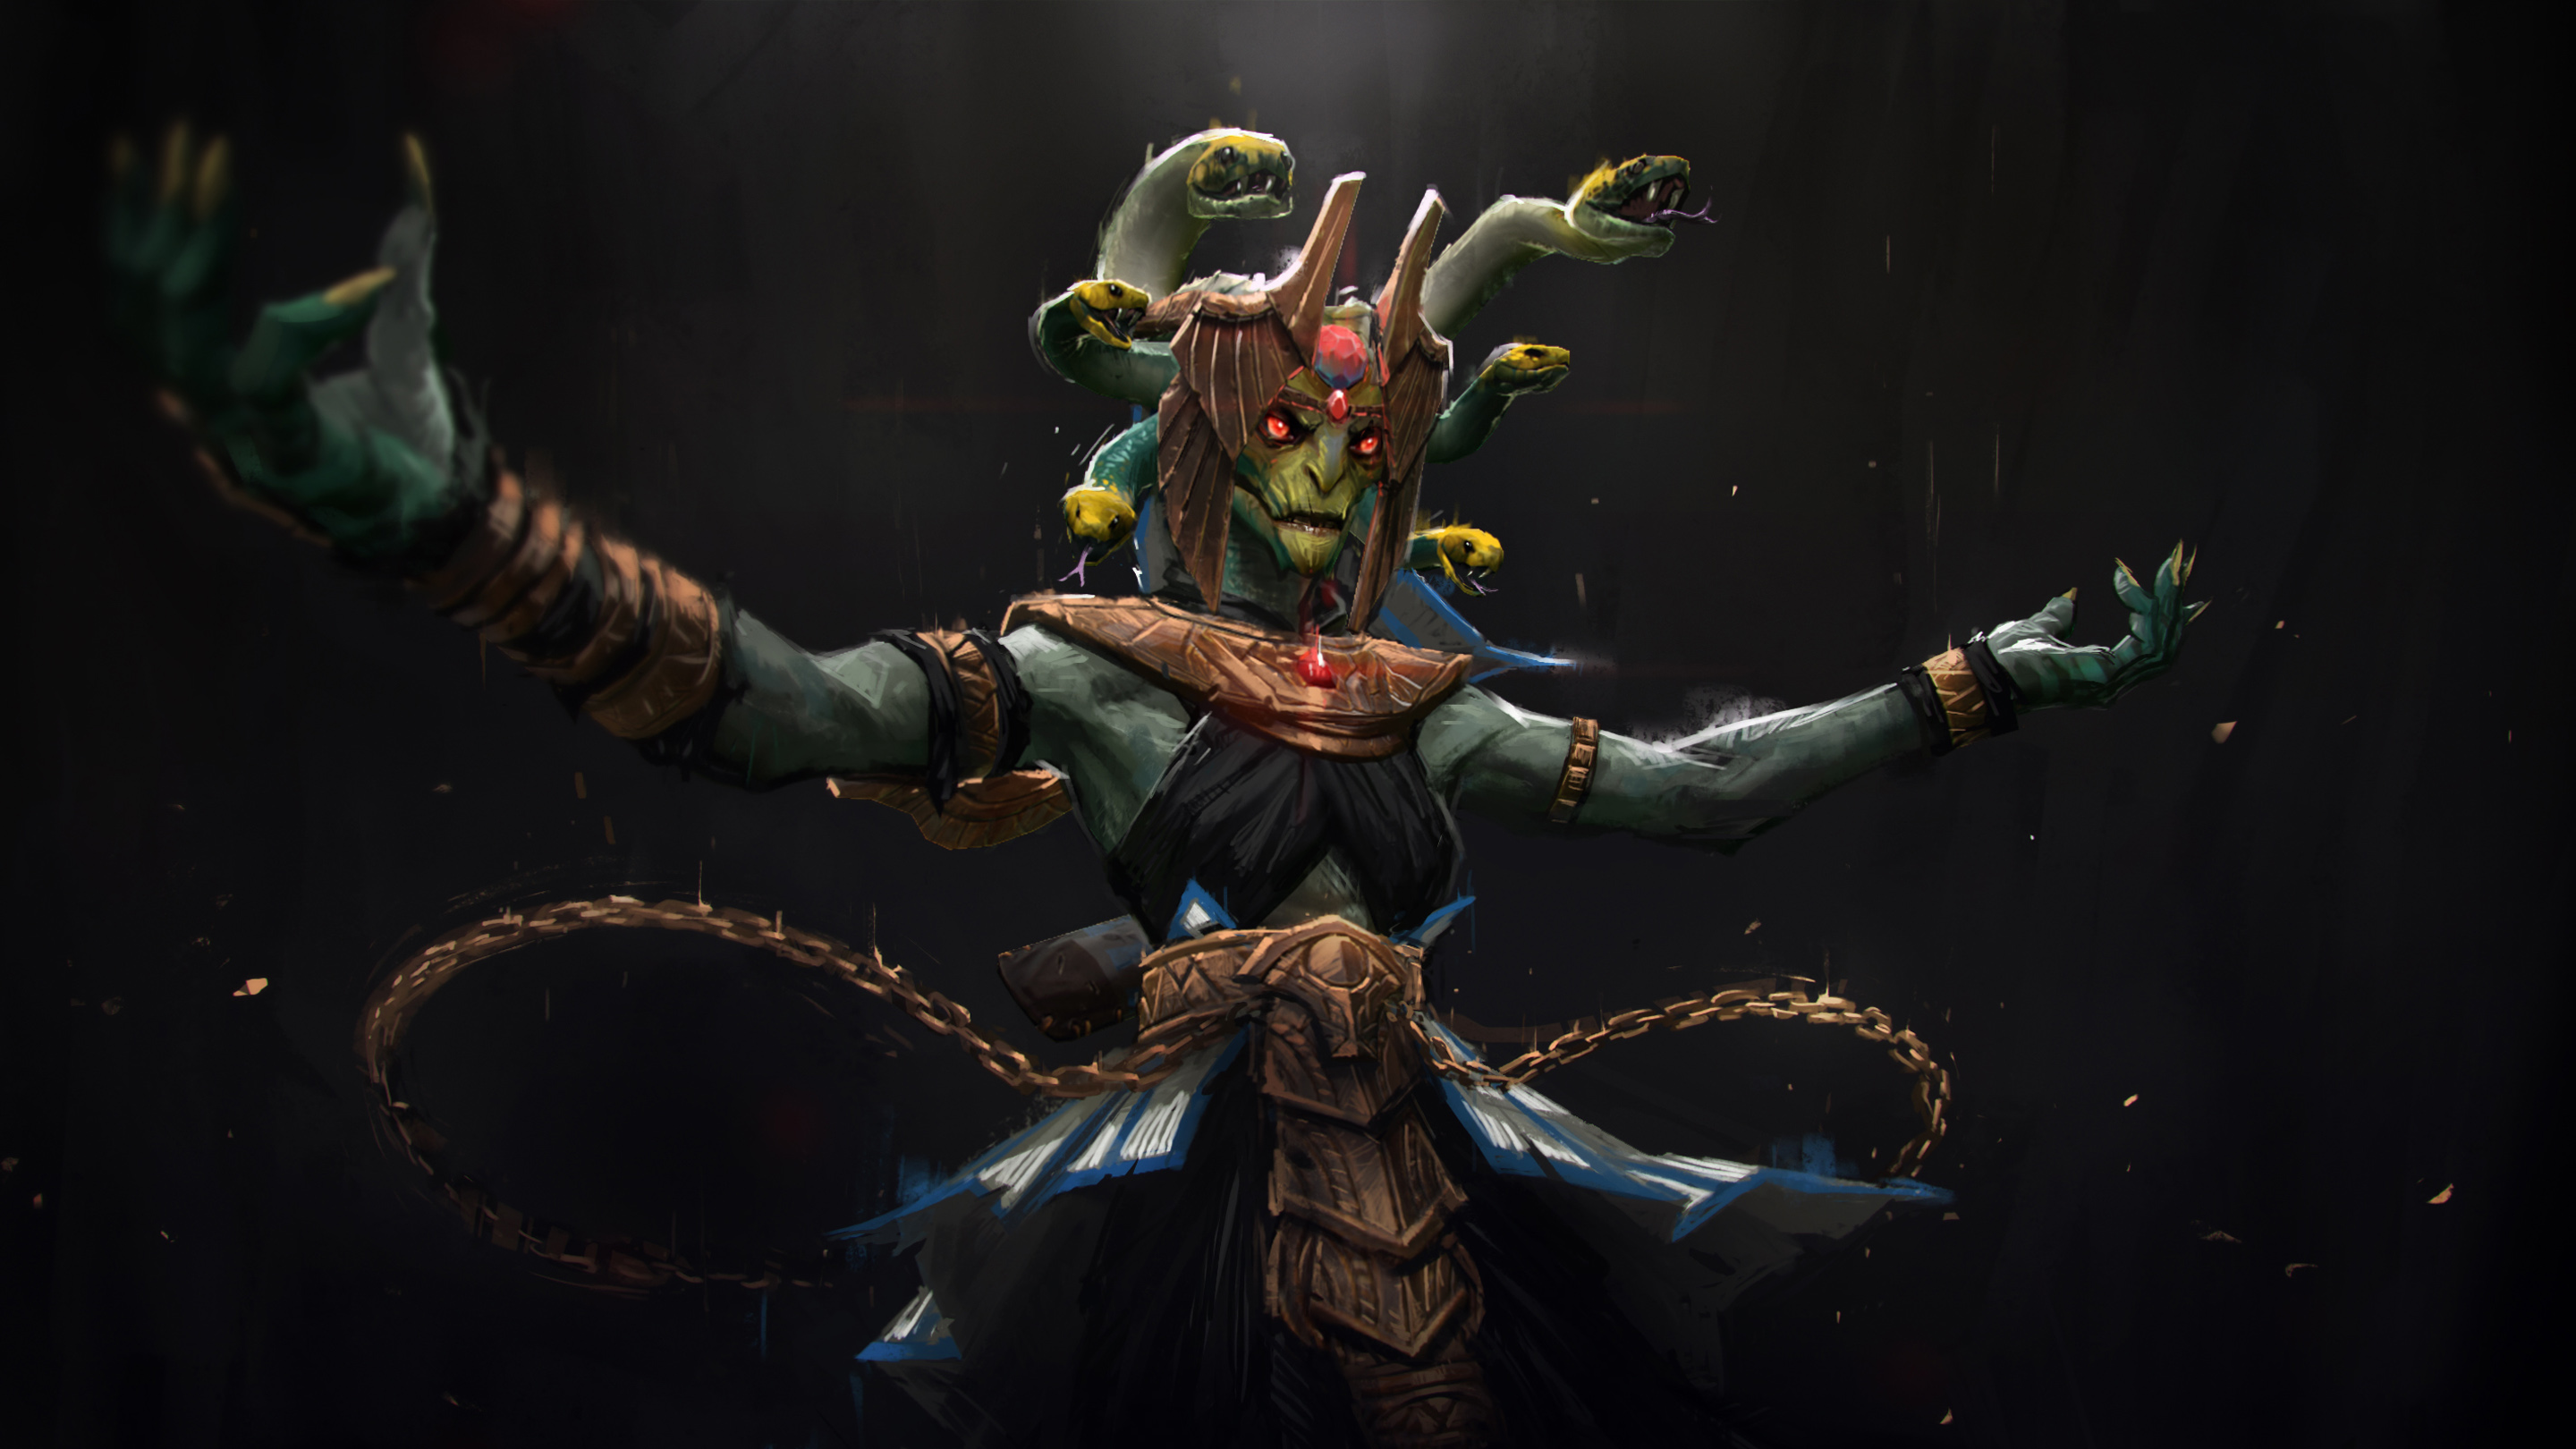 Free 3d Dinosaur Wallpaper Medusa Ranged Carry Disabler Durable Dota 2 Hd Wallpapers